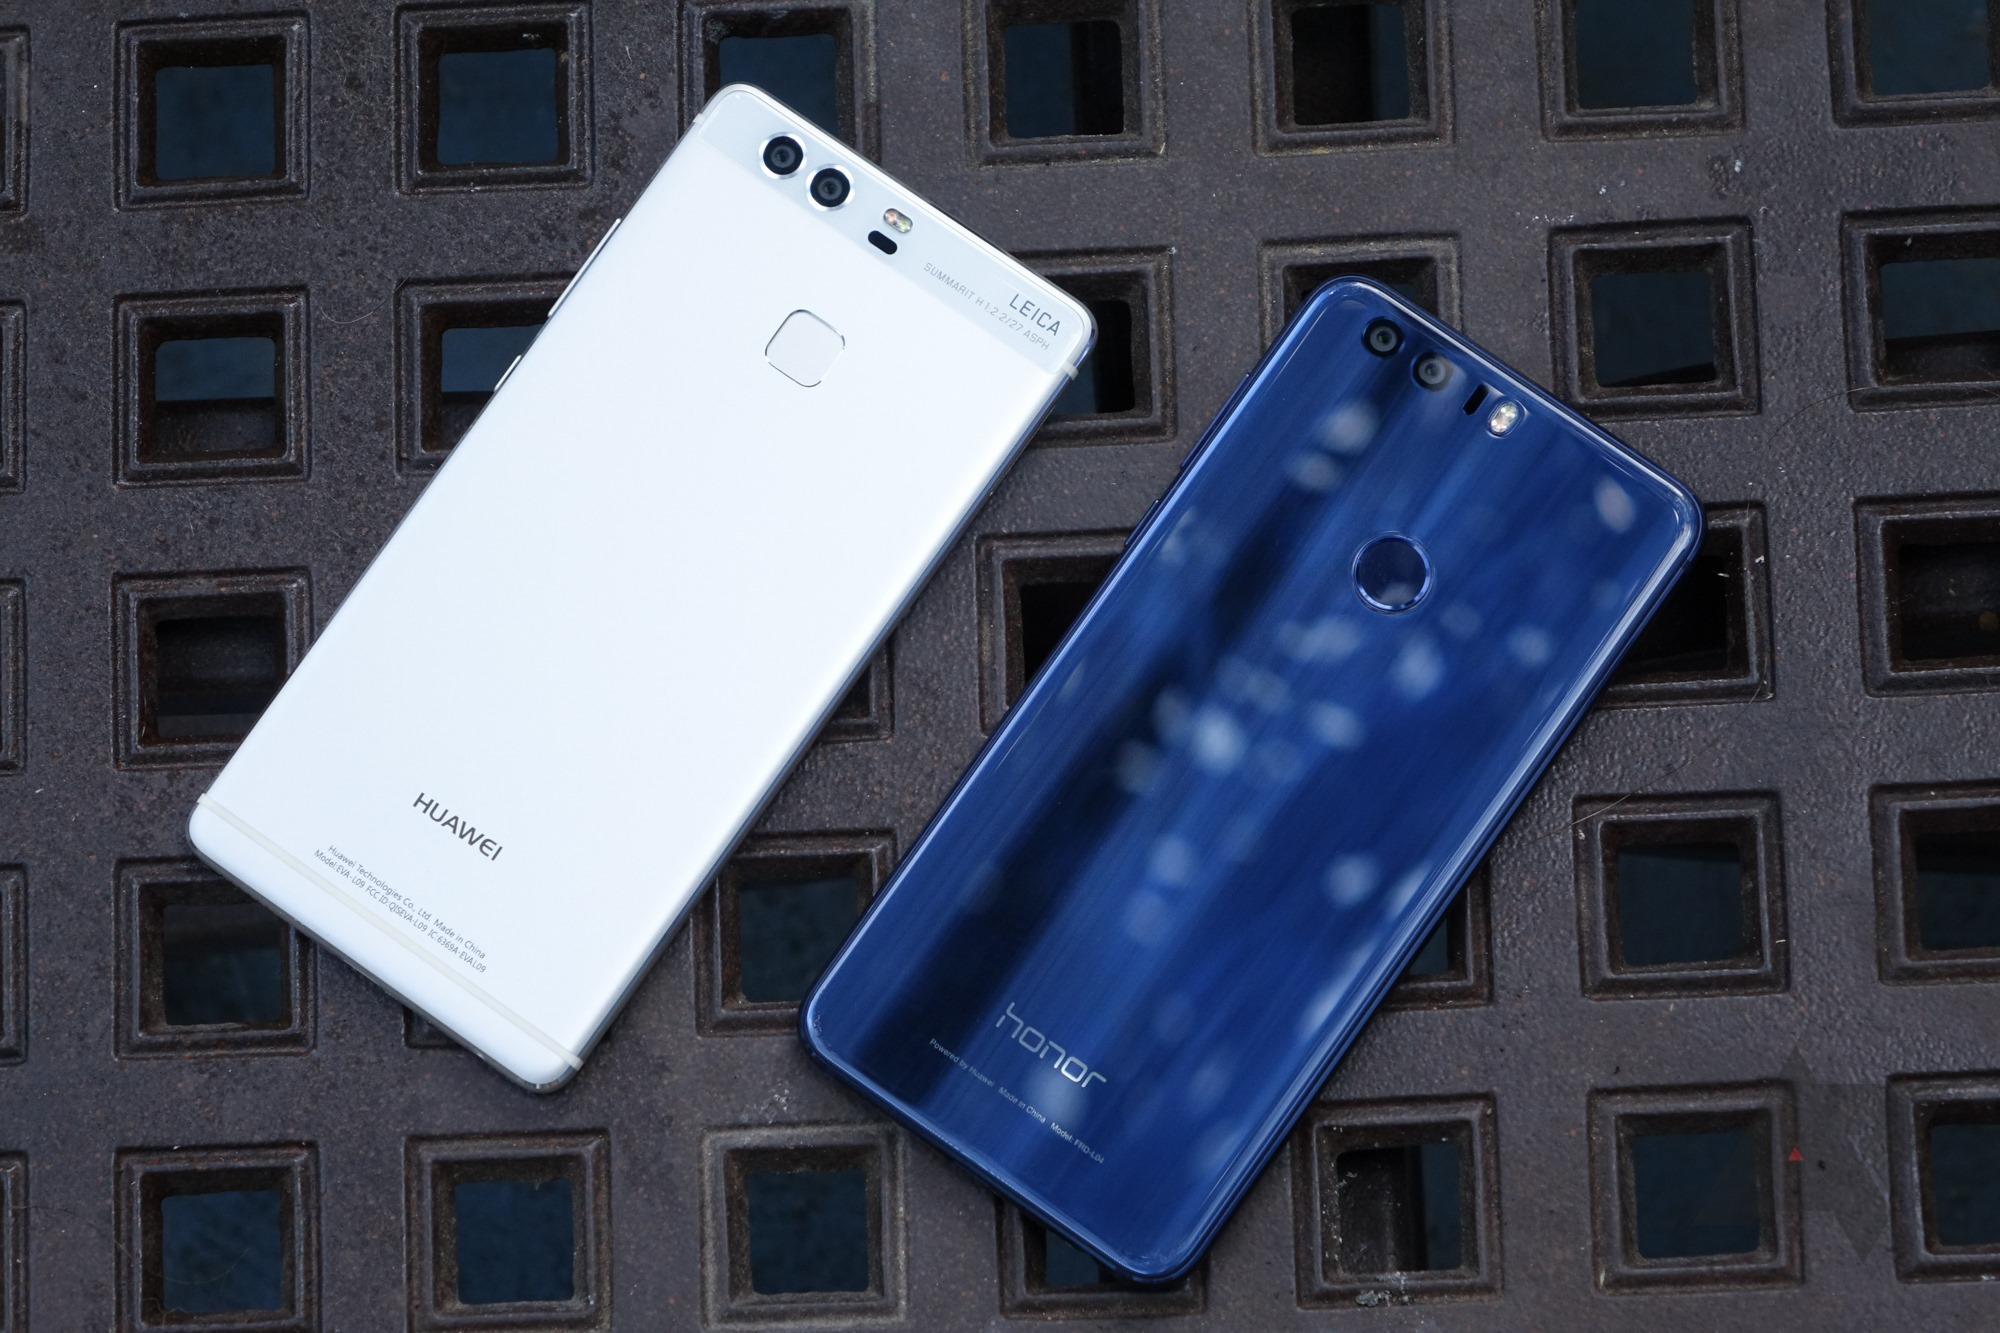 Huawei Honor 8 Review: A bargain of a phone - if you can